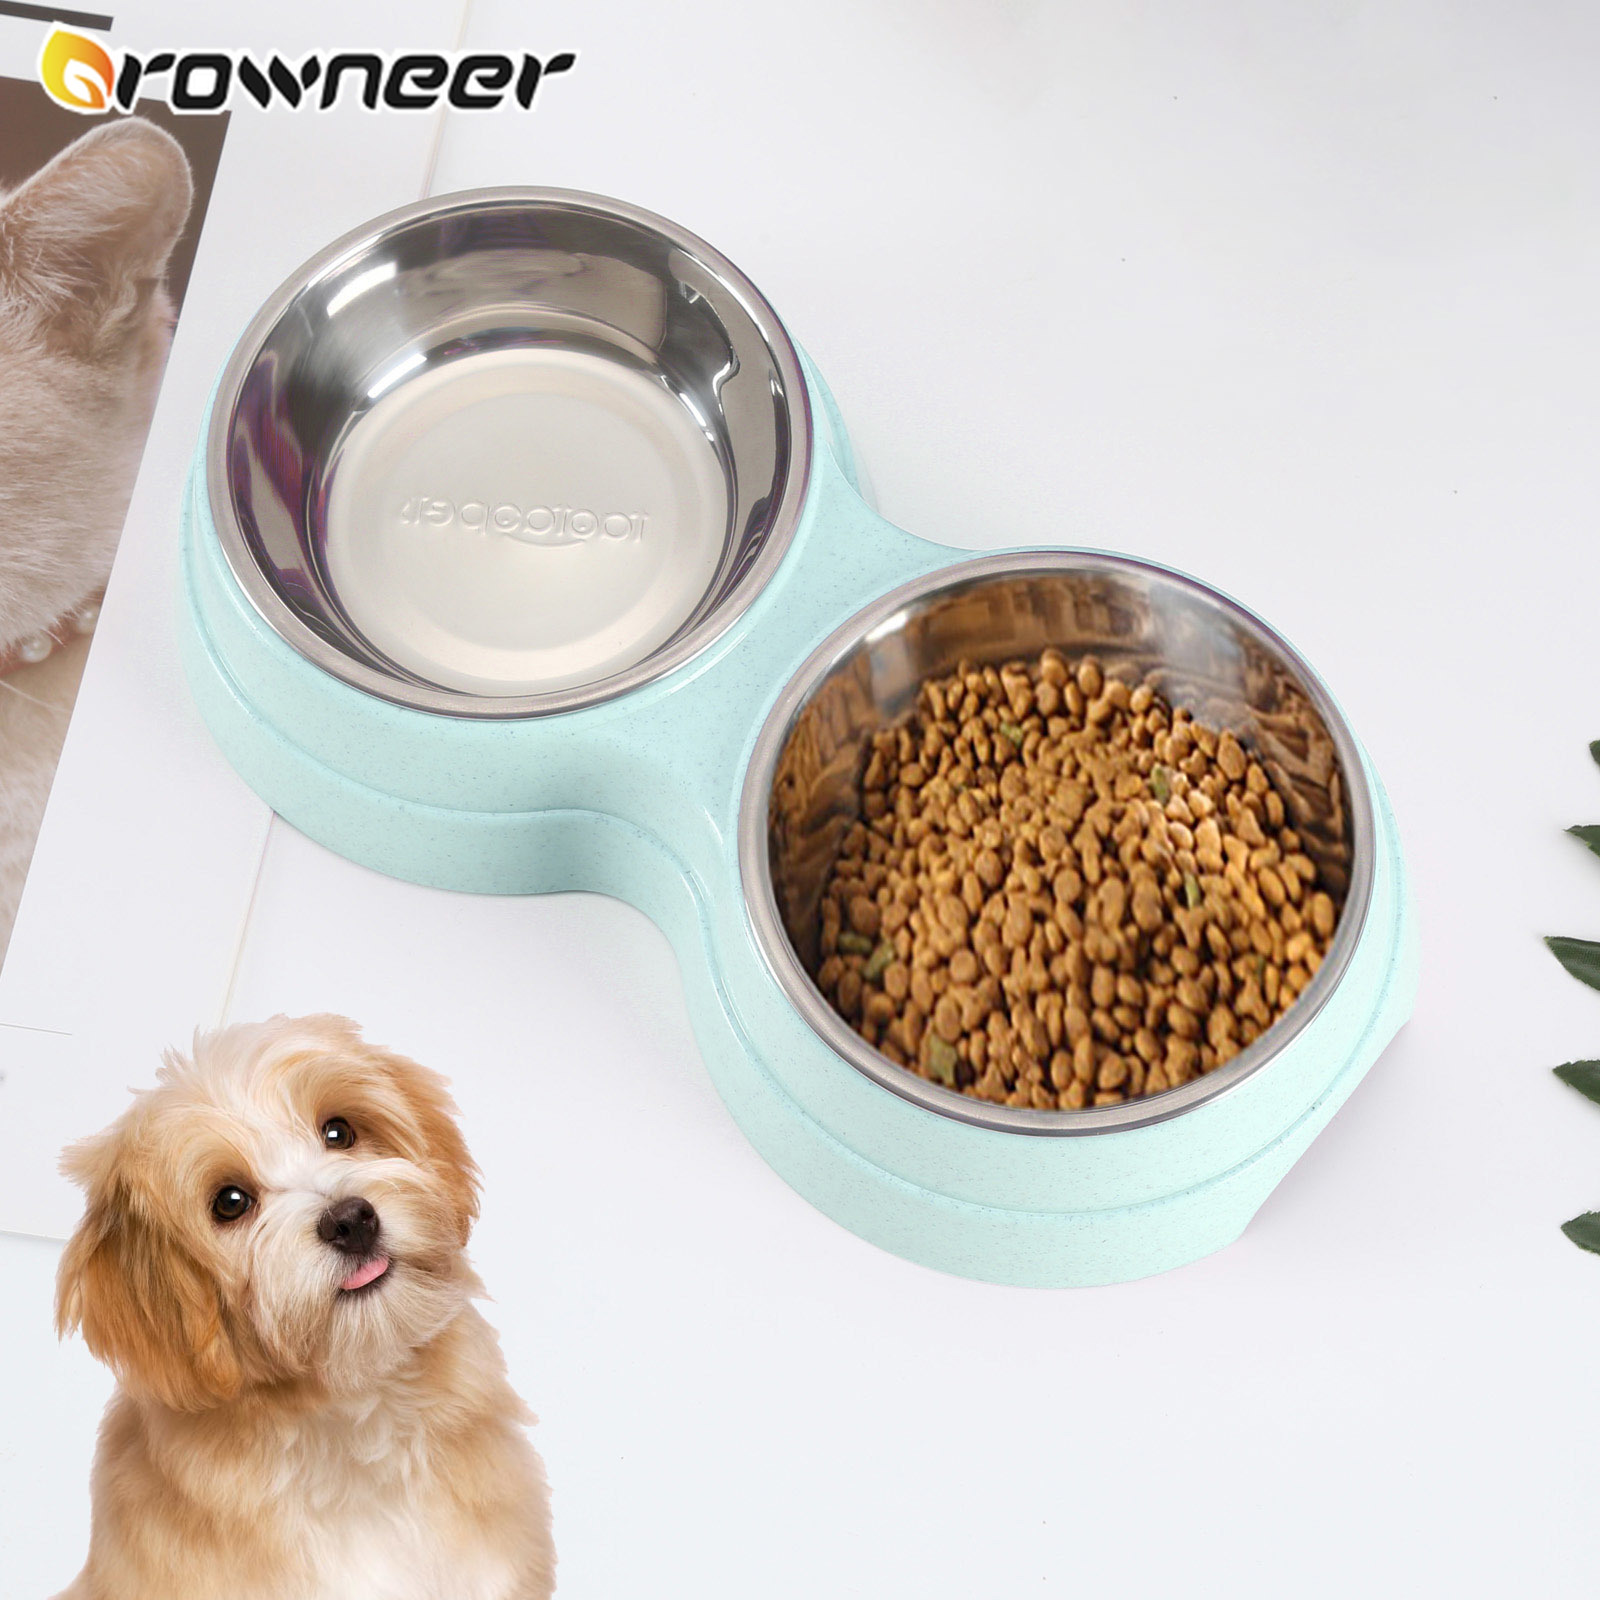 Dog Feed Drinking Bowl Candy Colors Double Dish Pet Feeders Set Removable Stainless Steel Straw PP Splash-proof Pet Supplies